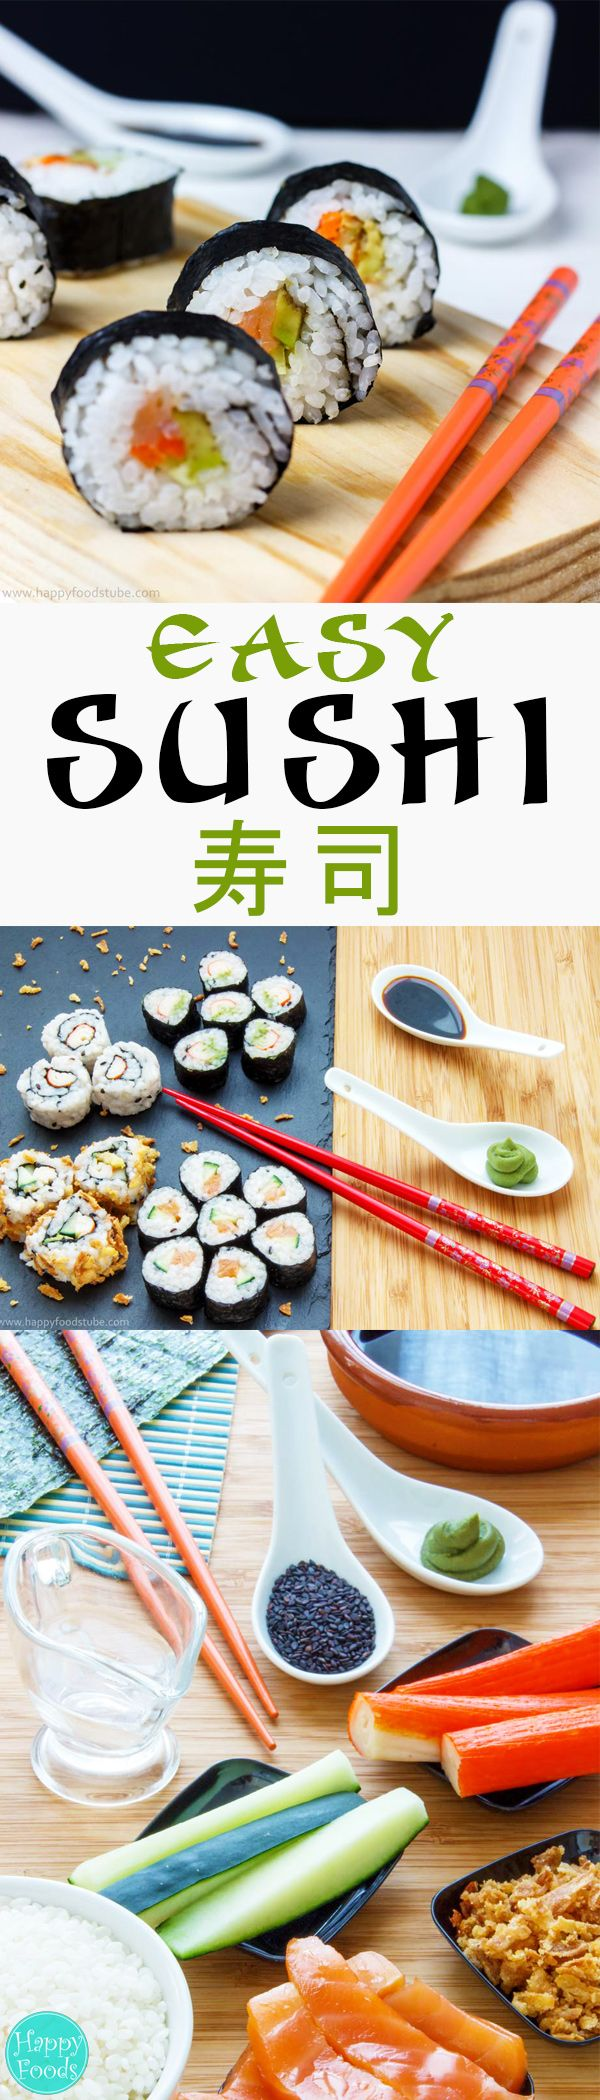 Easy Homemade Sushi - Making delicious sushi rolls at home is easy once you get the hang of it! You just need a few ingredients like salmon, cucumber, avocado, nori & rice. Japanese food | happyfoodstube.com